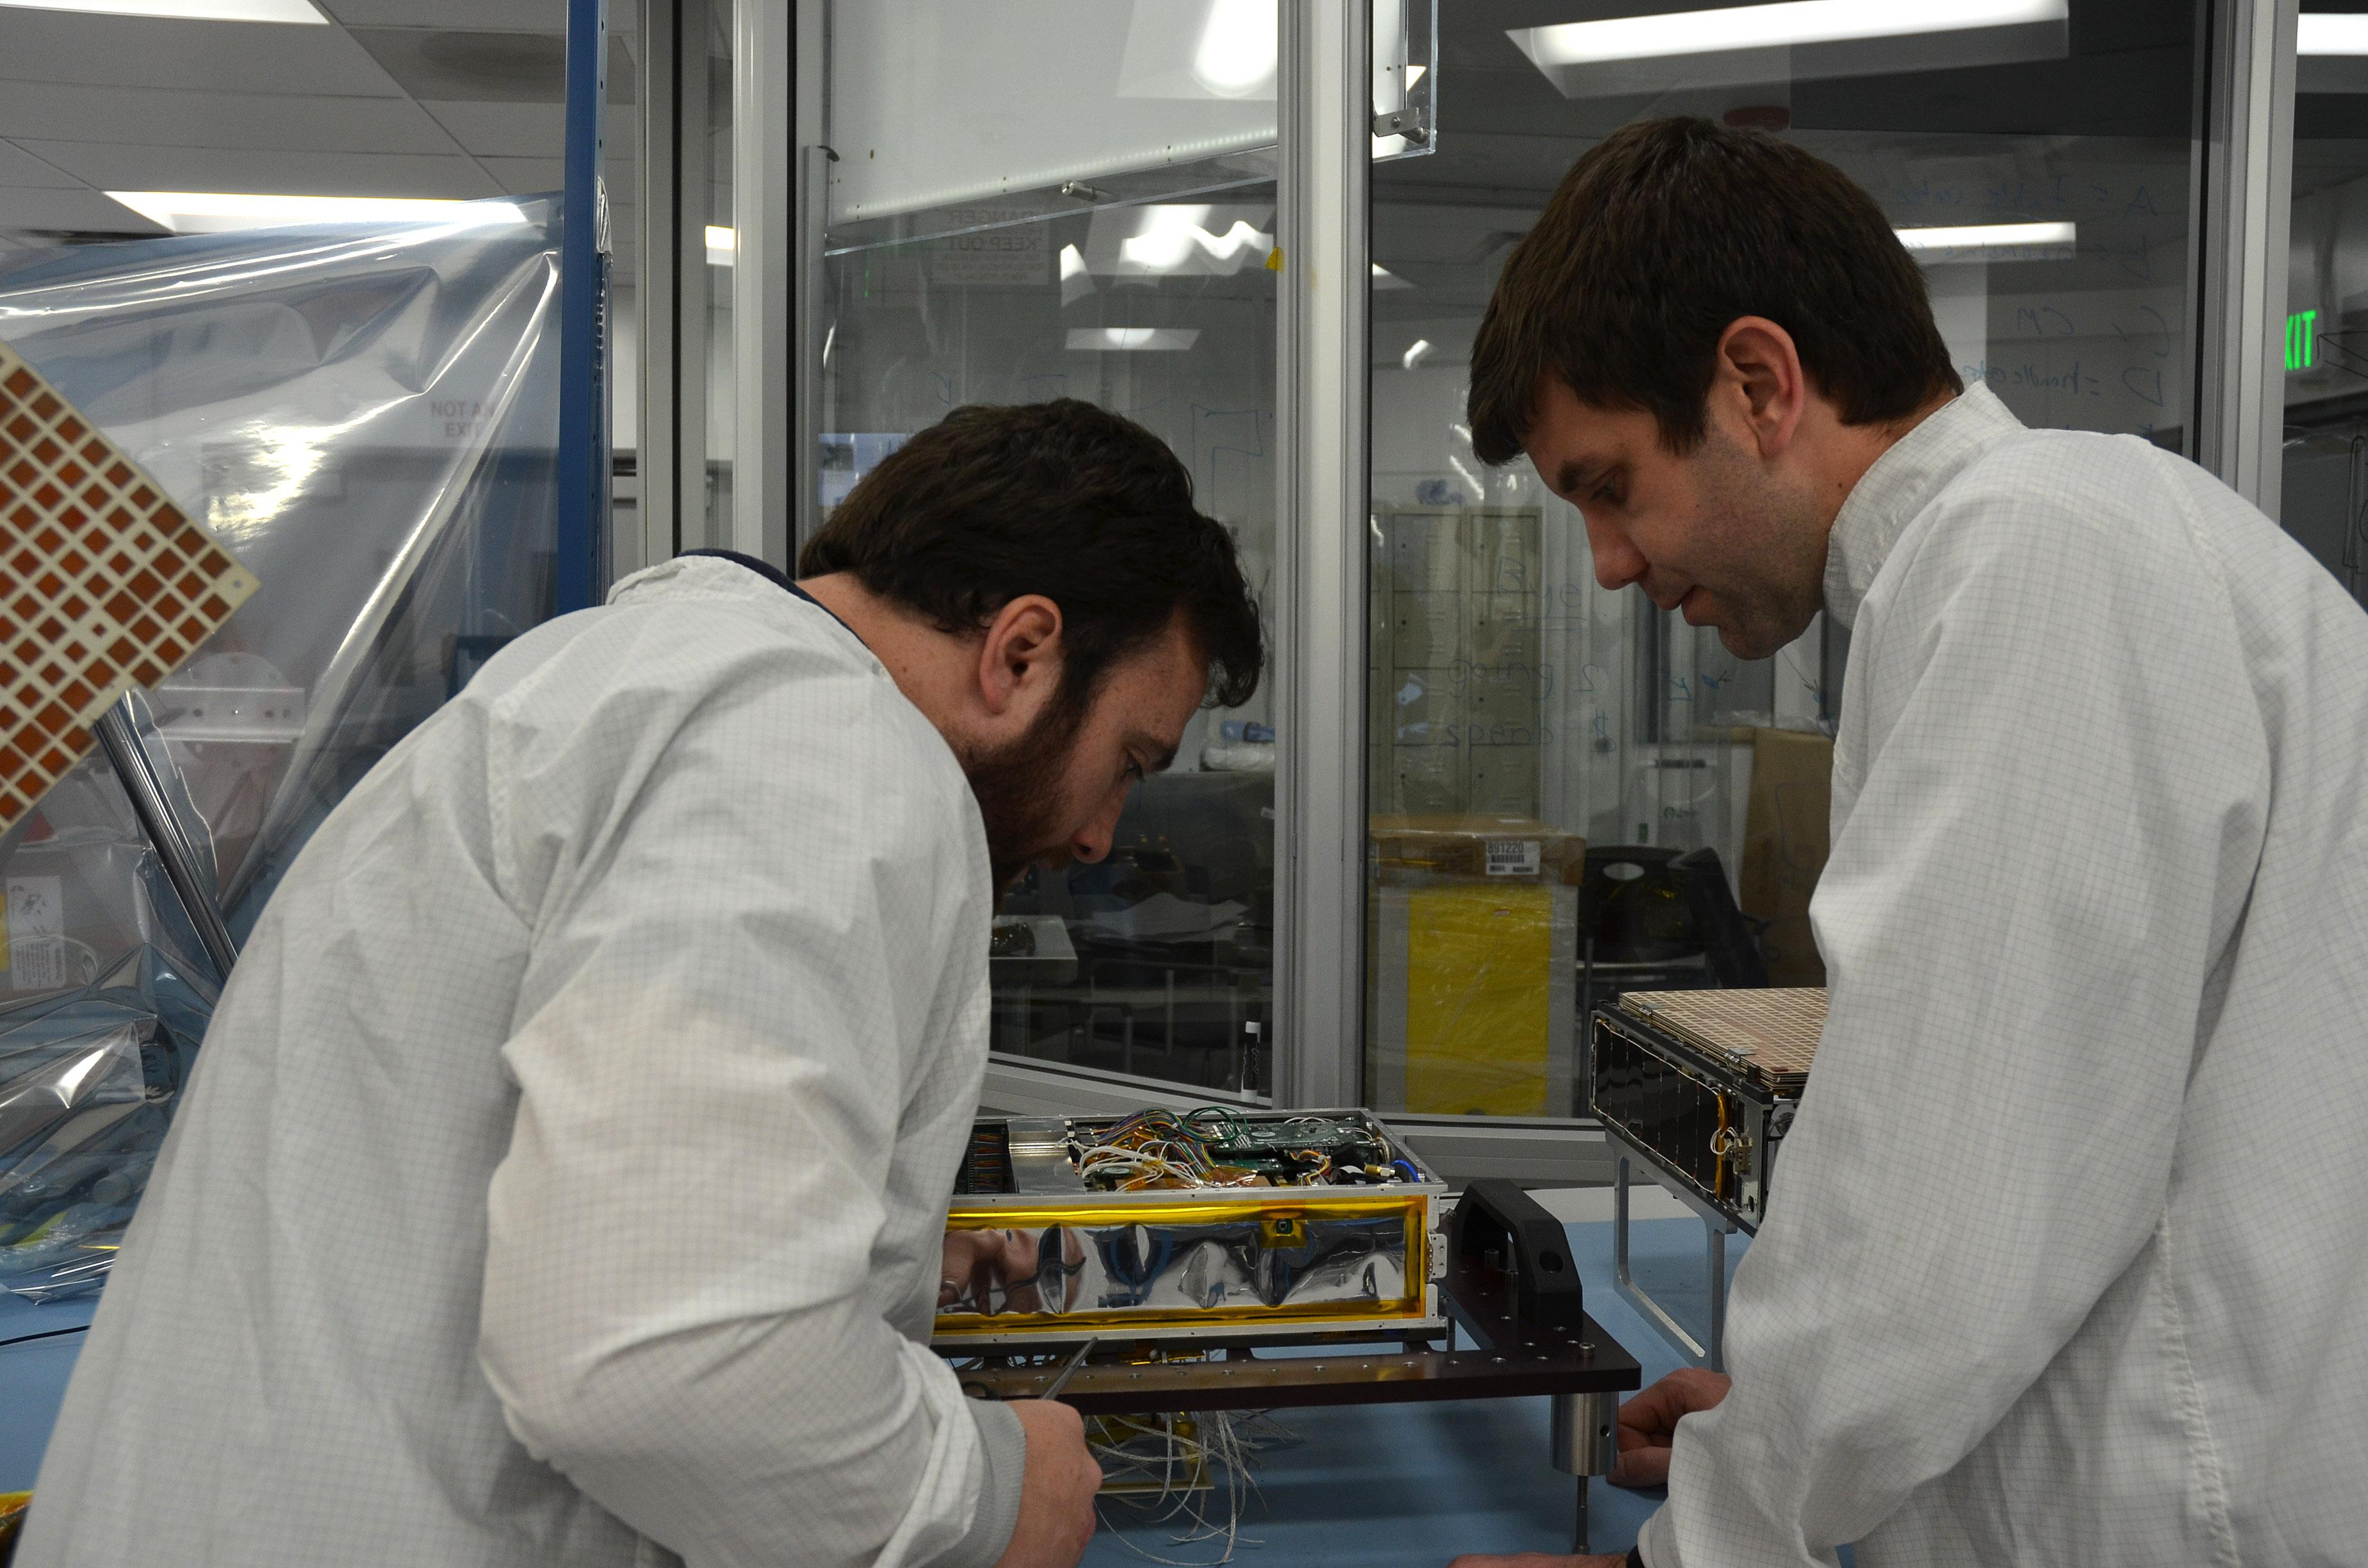 Engineers for NASA's MarCO (Mars Cube One) technology demonstration inspect one of the two MarCO CubeSats. Joel Steinkraus, MarCO lead mechanical engineer, left, and Andy Klesh, MarCO chief engineer, are on the team at NASA's Jet Propulsion Laboratory, Pasadena, California, preparing twin MarCO CubeSats.